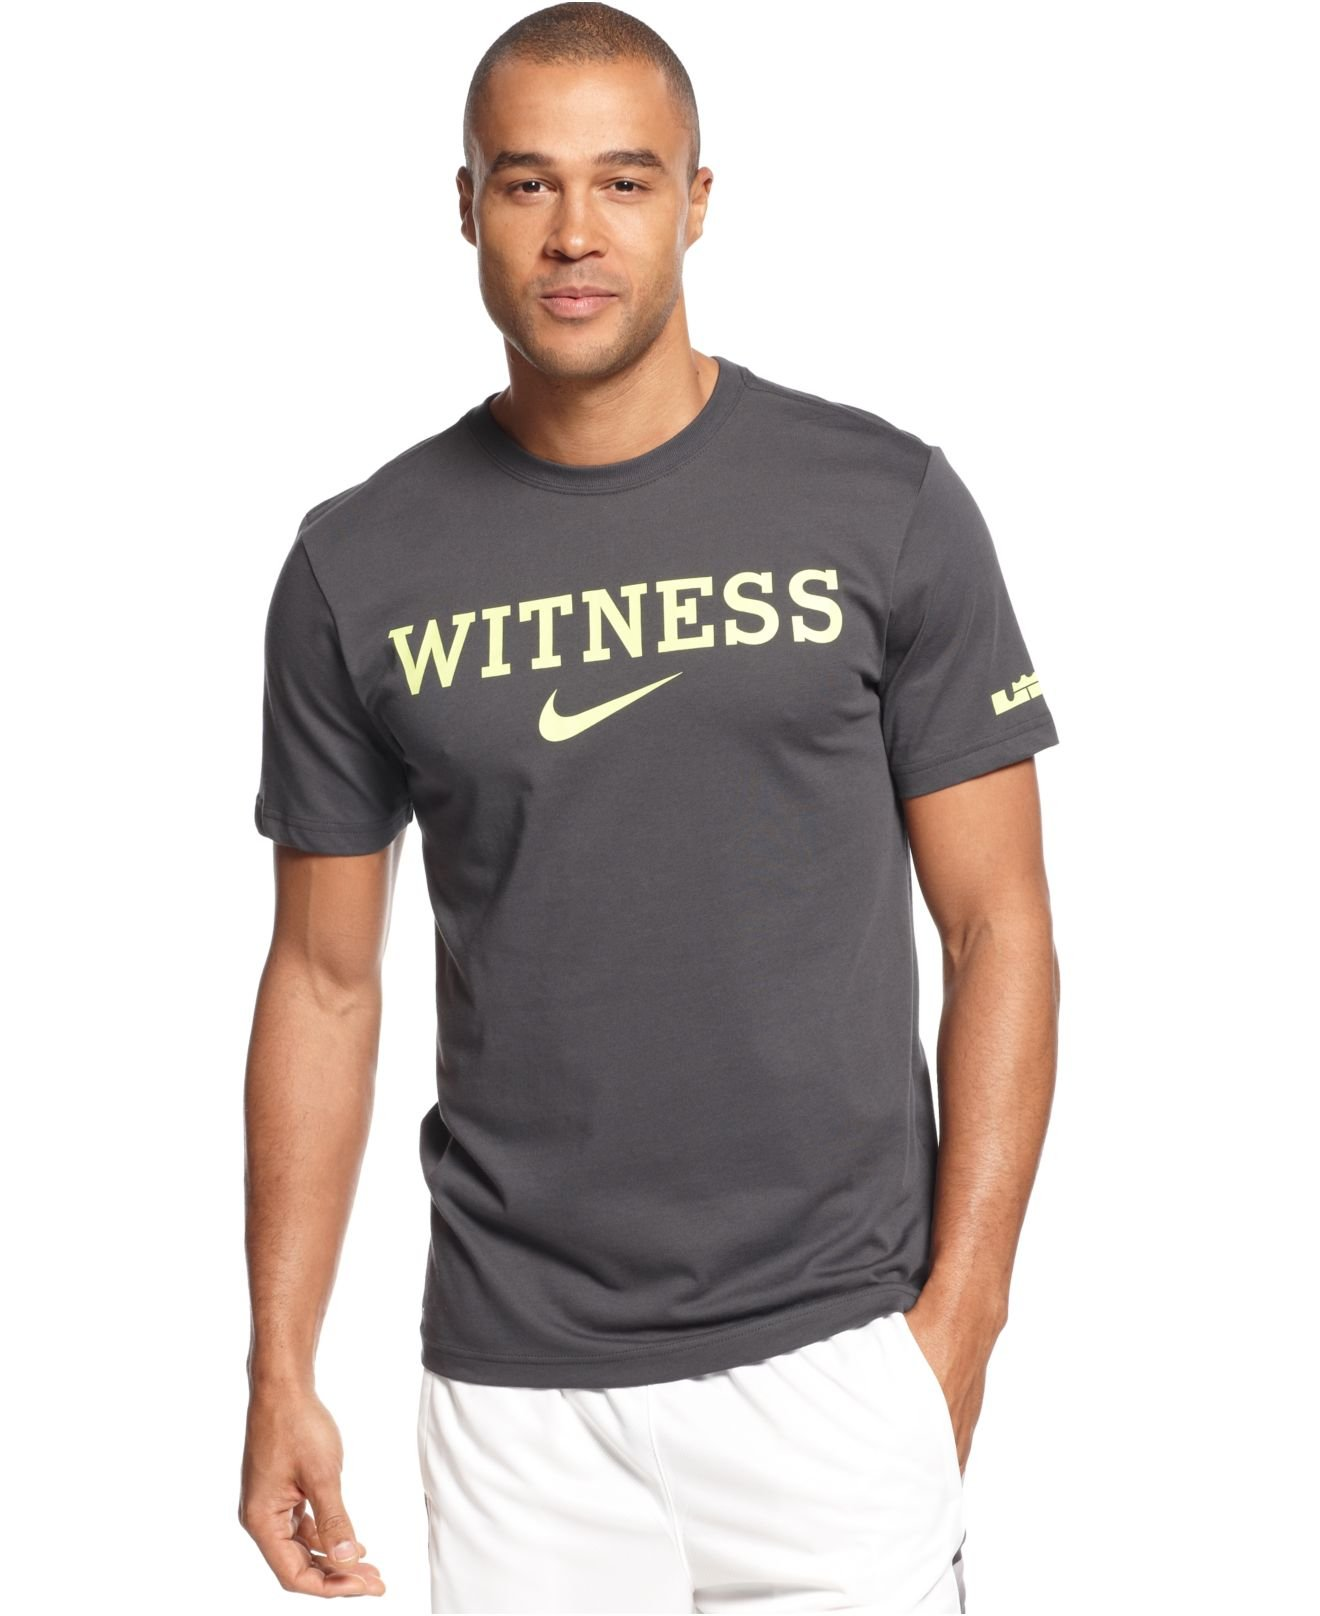 nike witness t shirt